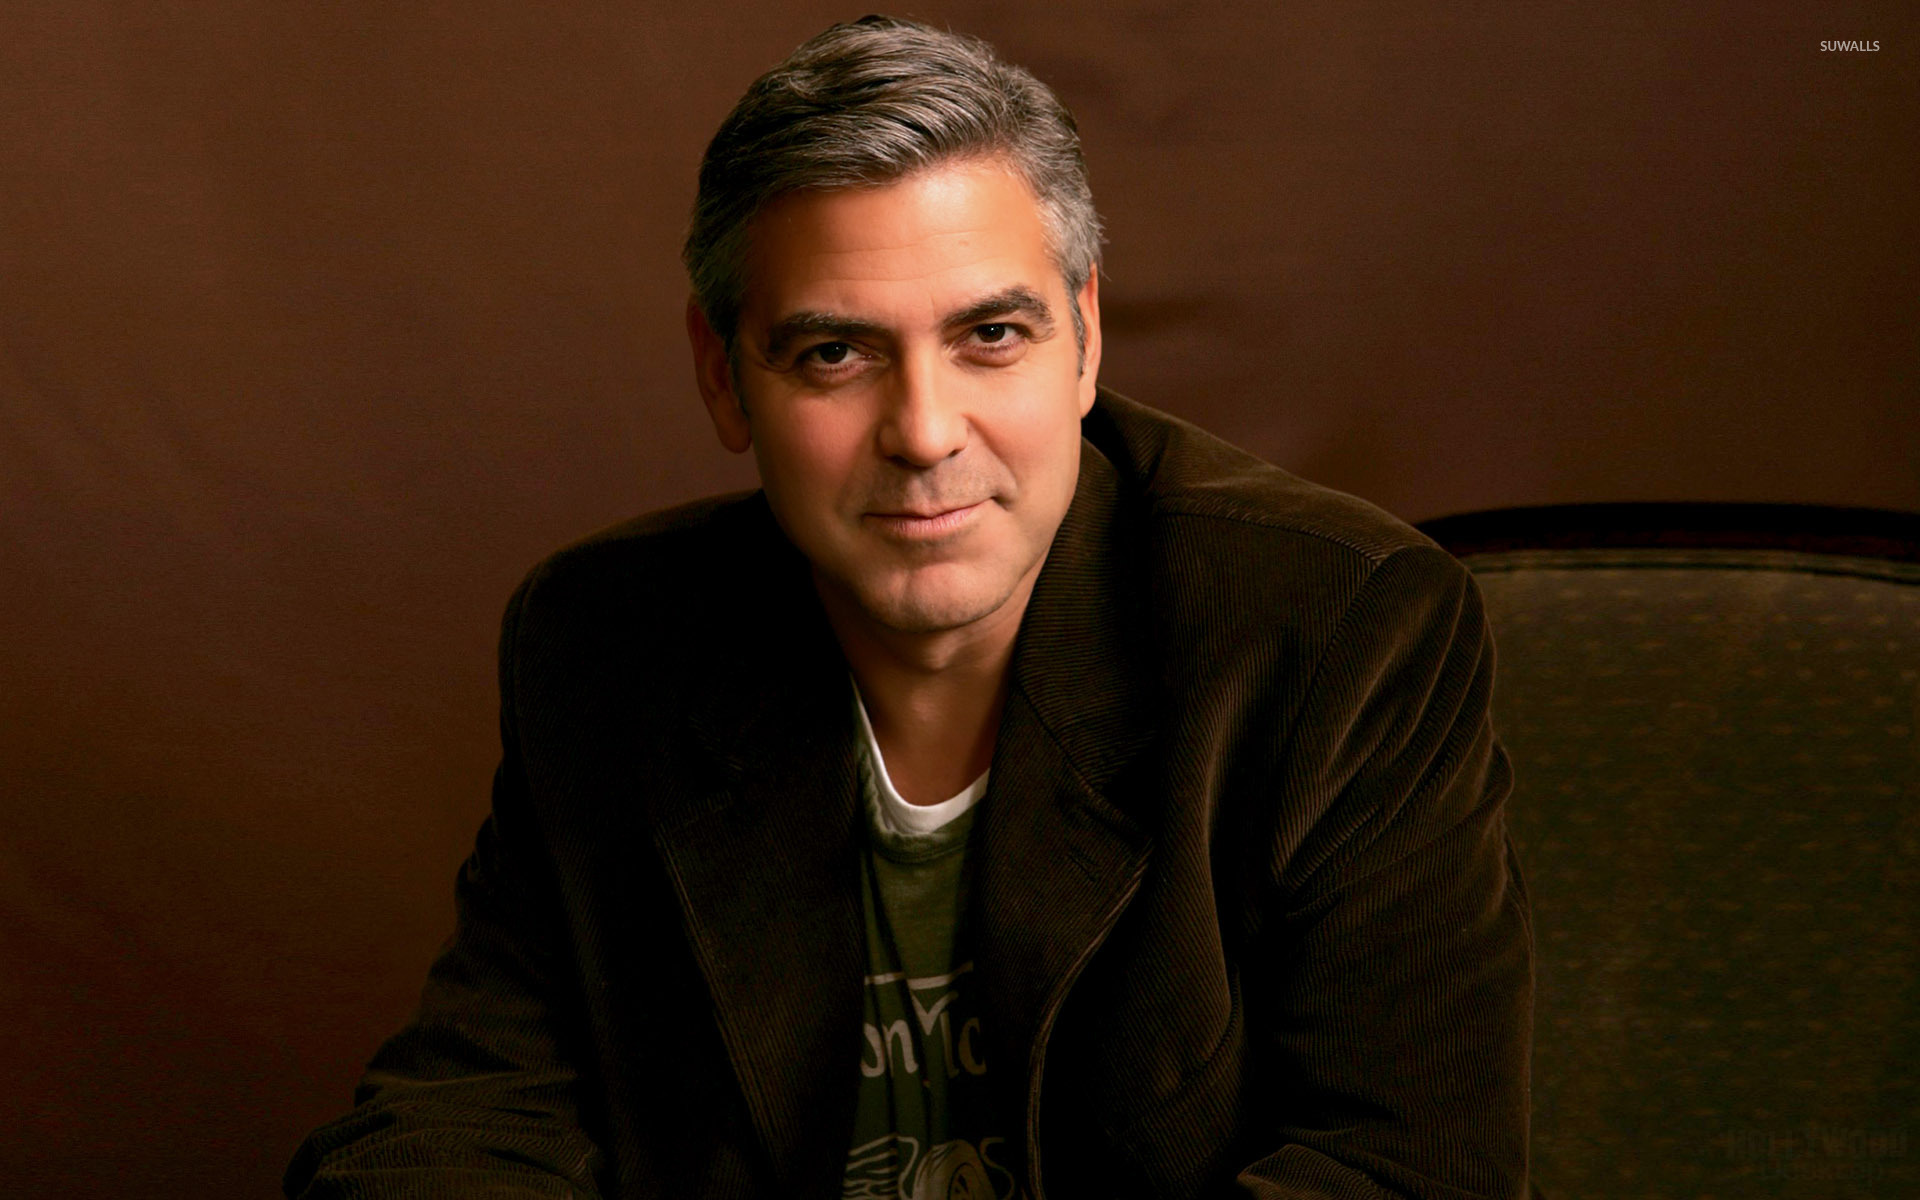 George Clooney wallpaper   Male celebrity wallpapers   2895 1920x1200